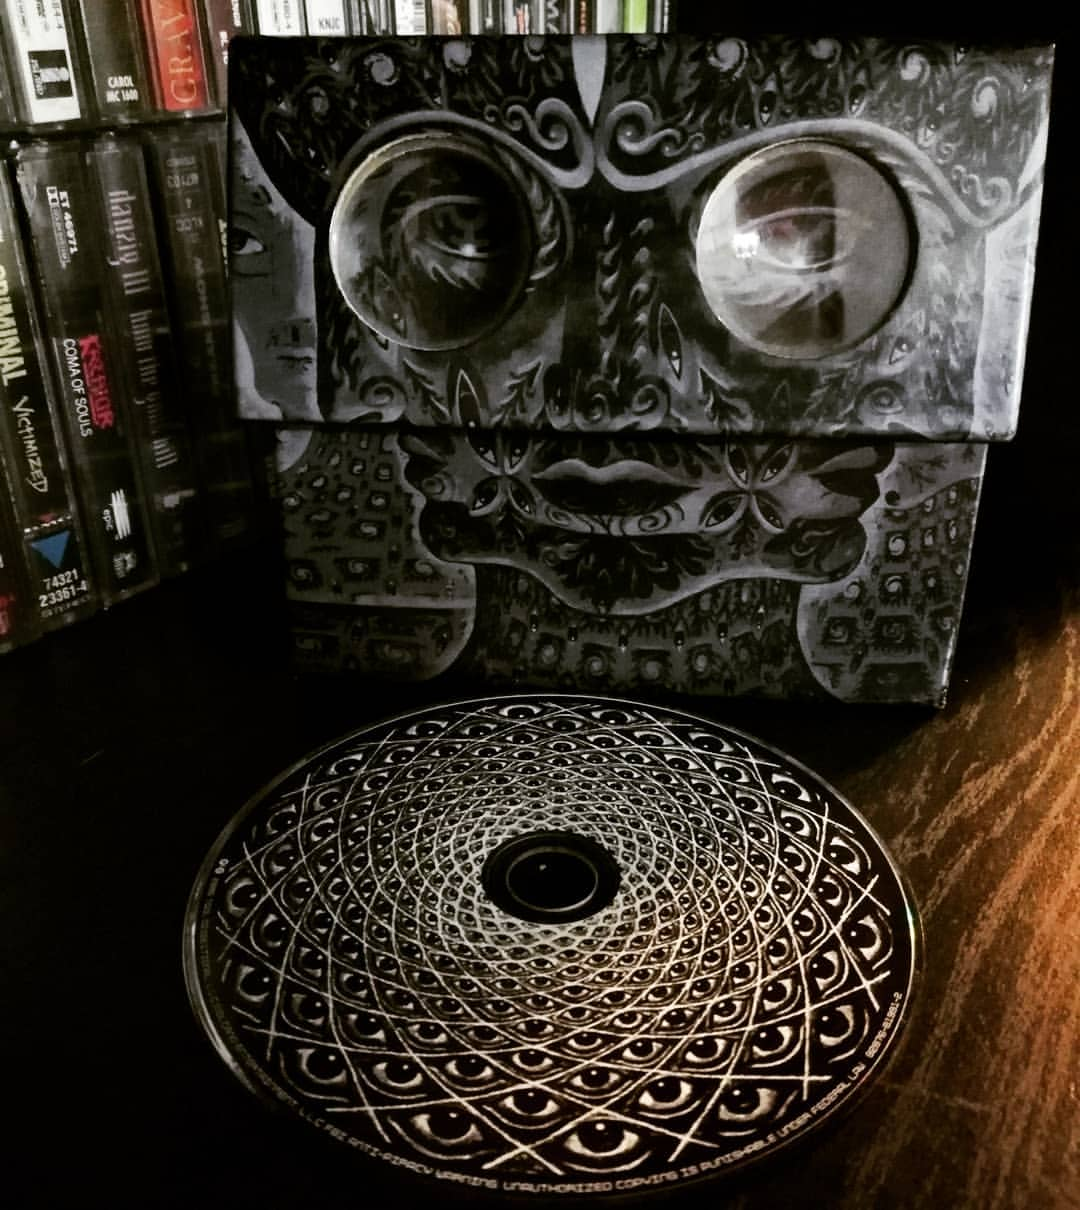 Tool, 10,000 days Front Cover